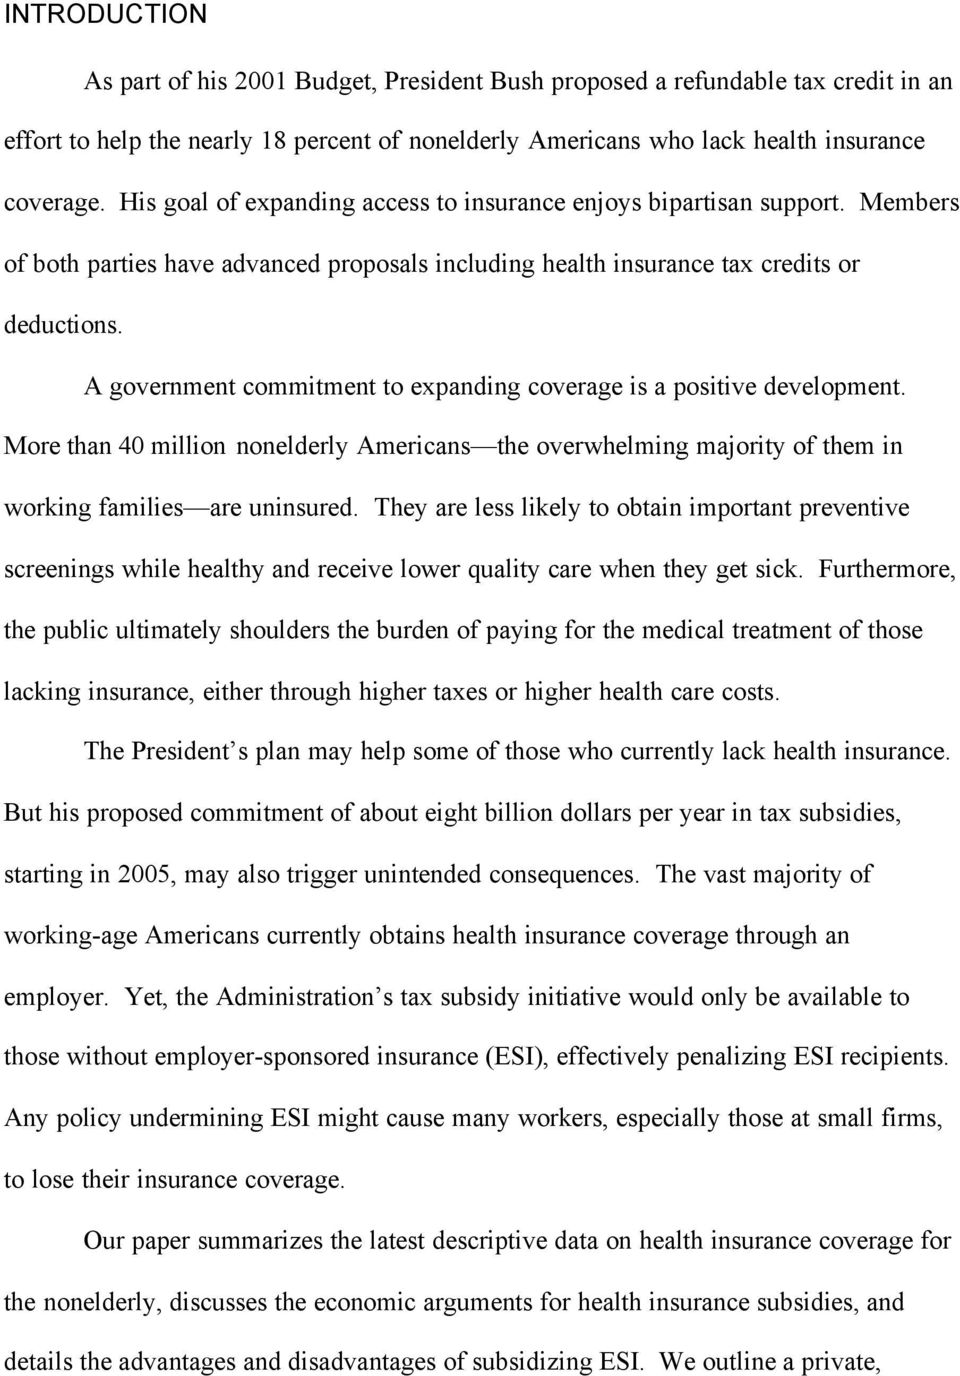 A government commitment to expanding coverage is a positive development. More than 40 million nonelderly Americans the overwhelming majority of them in working families are uninsured.